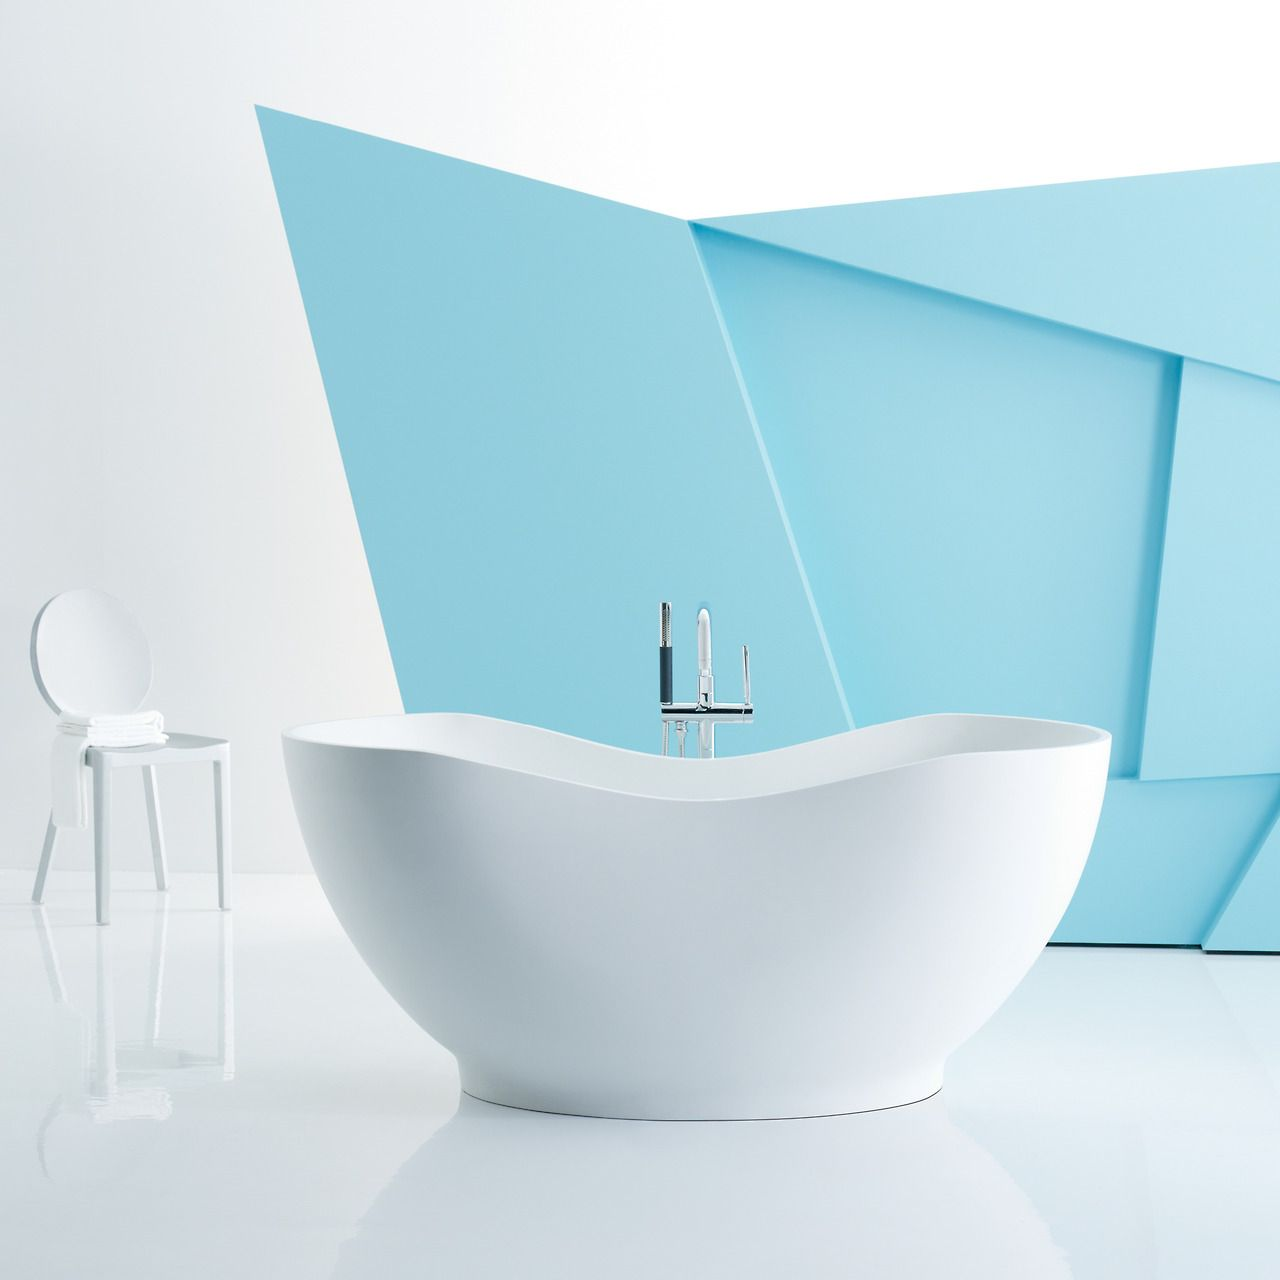 Abrazo freestanding bath | BATHROOMS | Pinterest | Freestanding bath ...